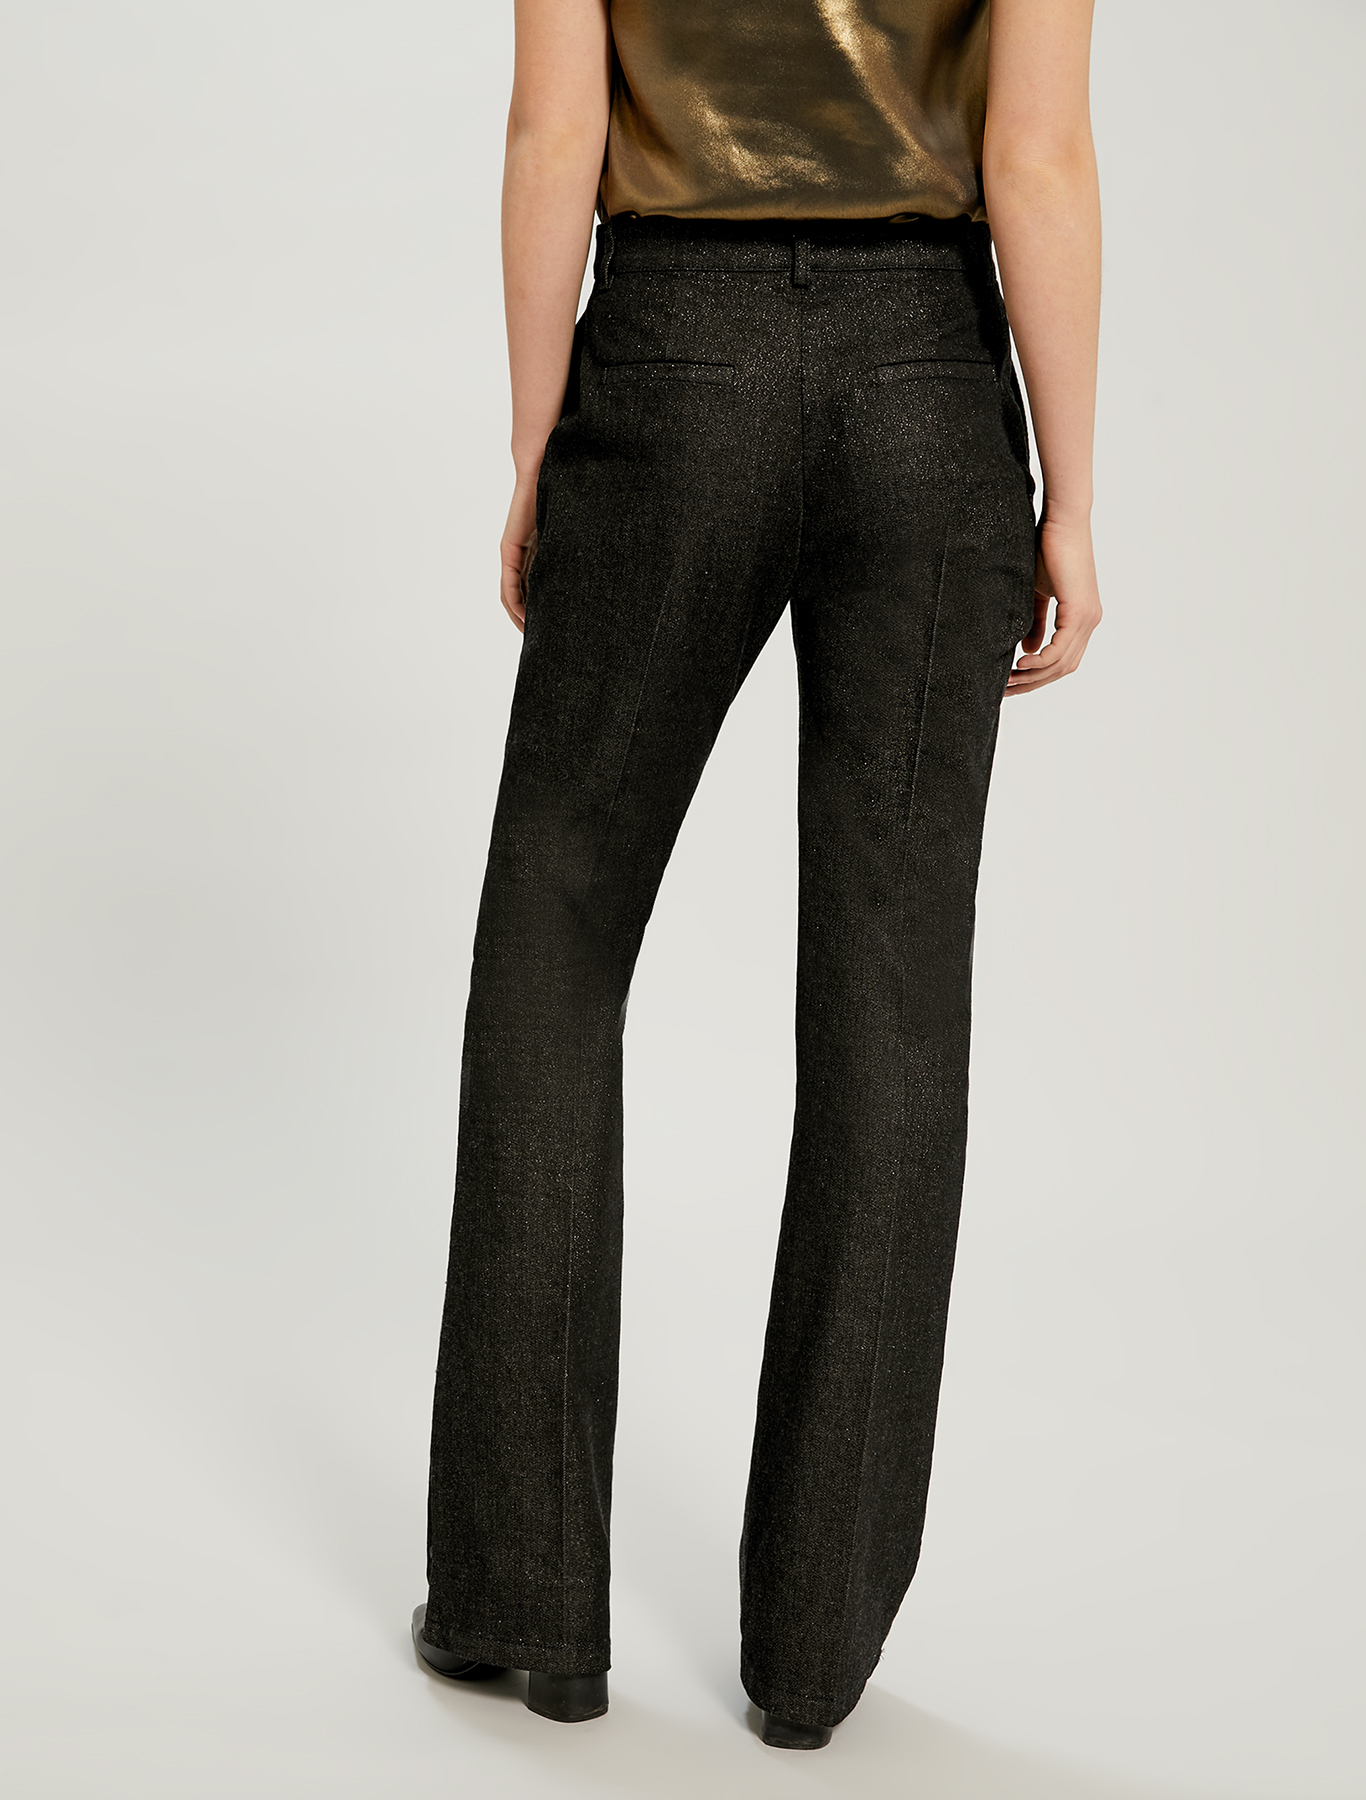 Black bootcut jeans with lamé - black - pennyblack